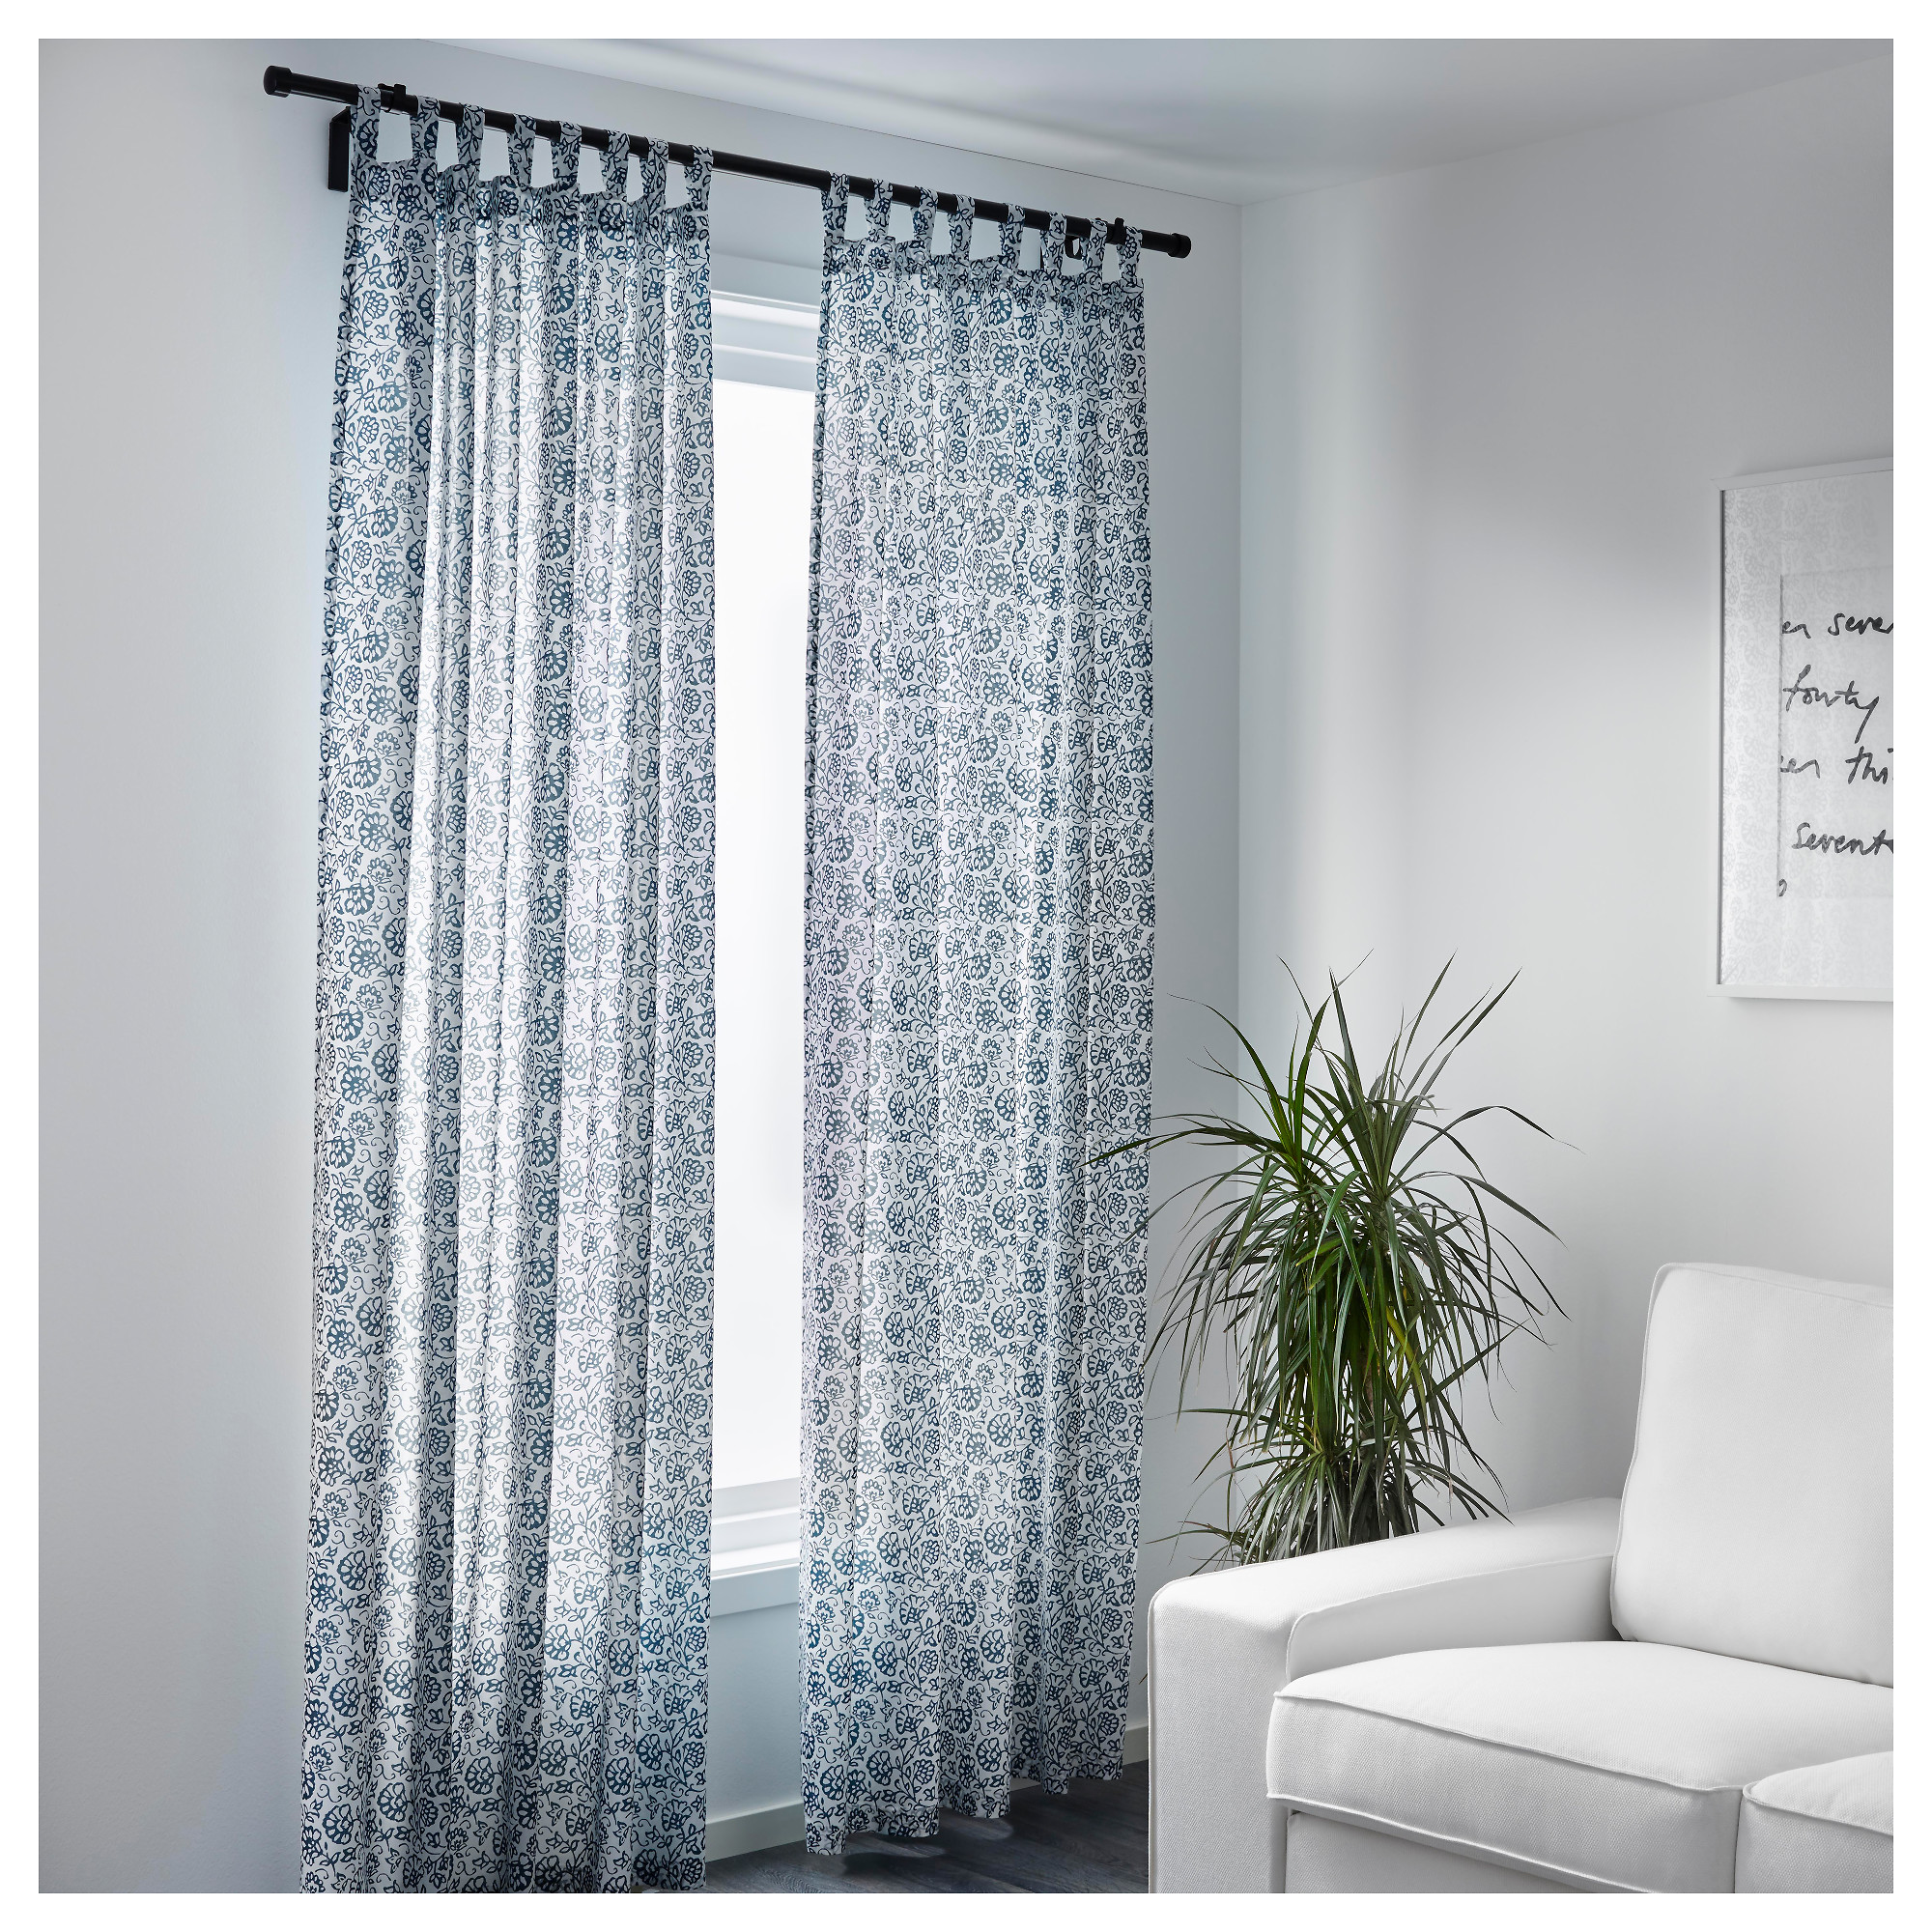 MJÖLKÖRT Curtains, 1 pair - IKEA